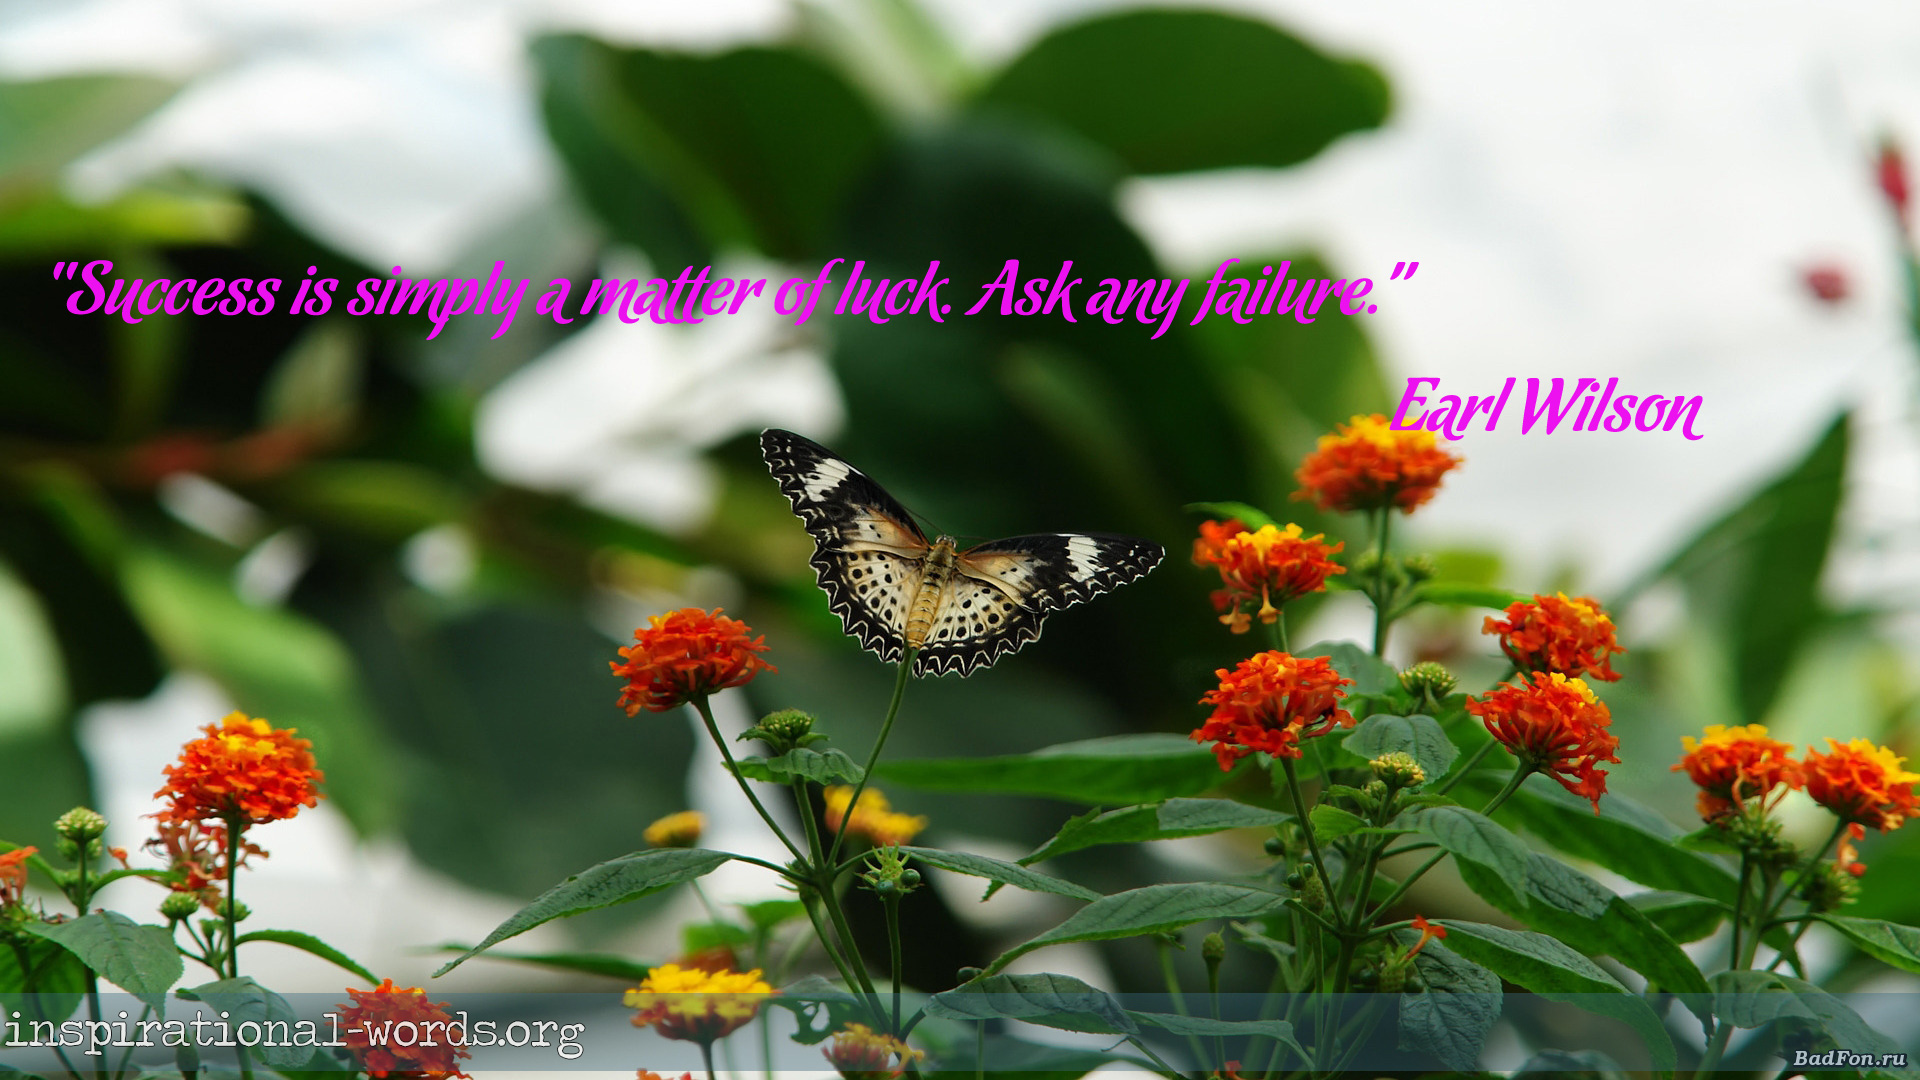 Inspirational Wallpaper Quote by Earl Wilson